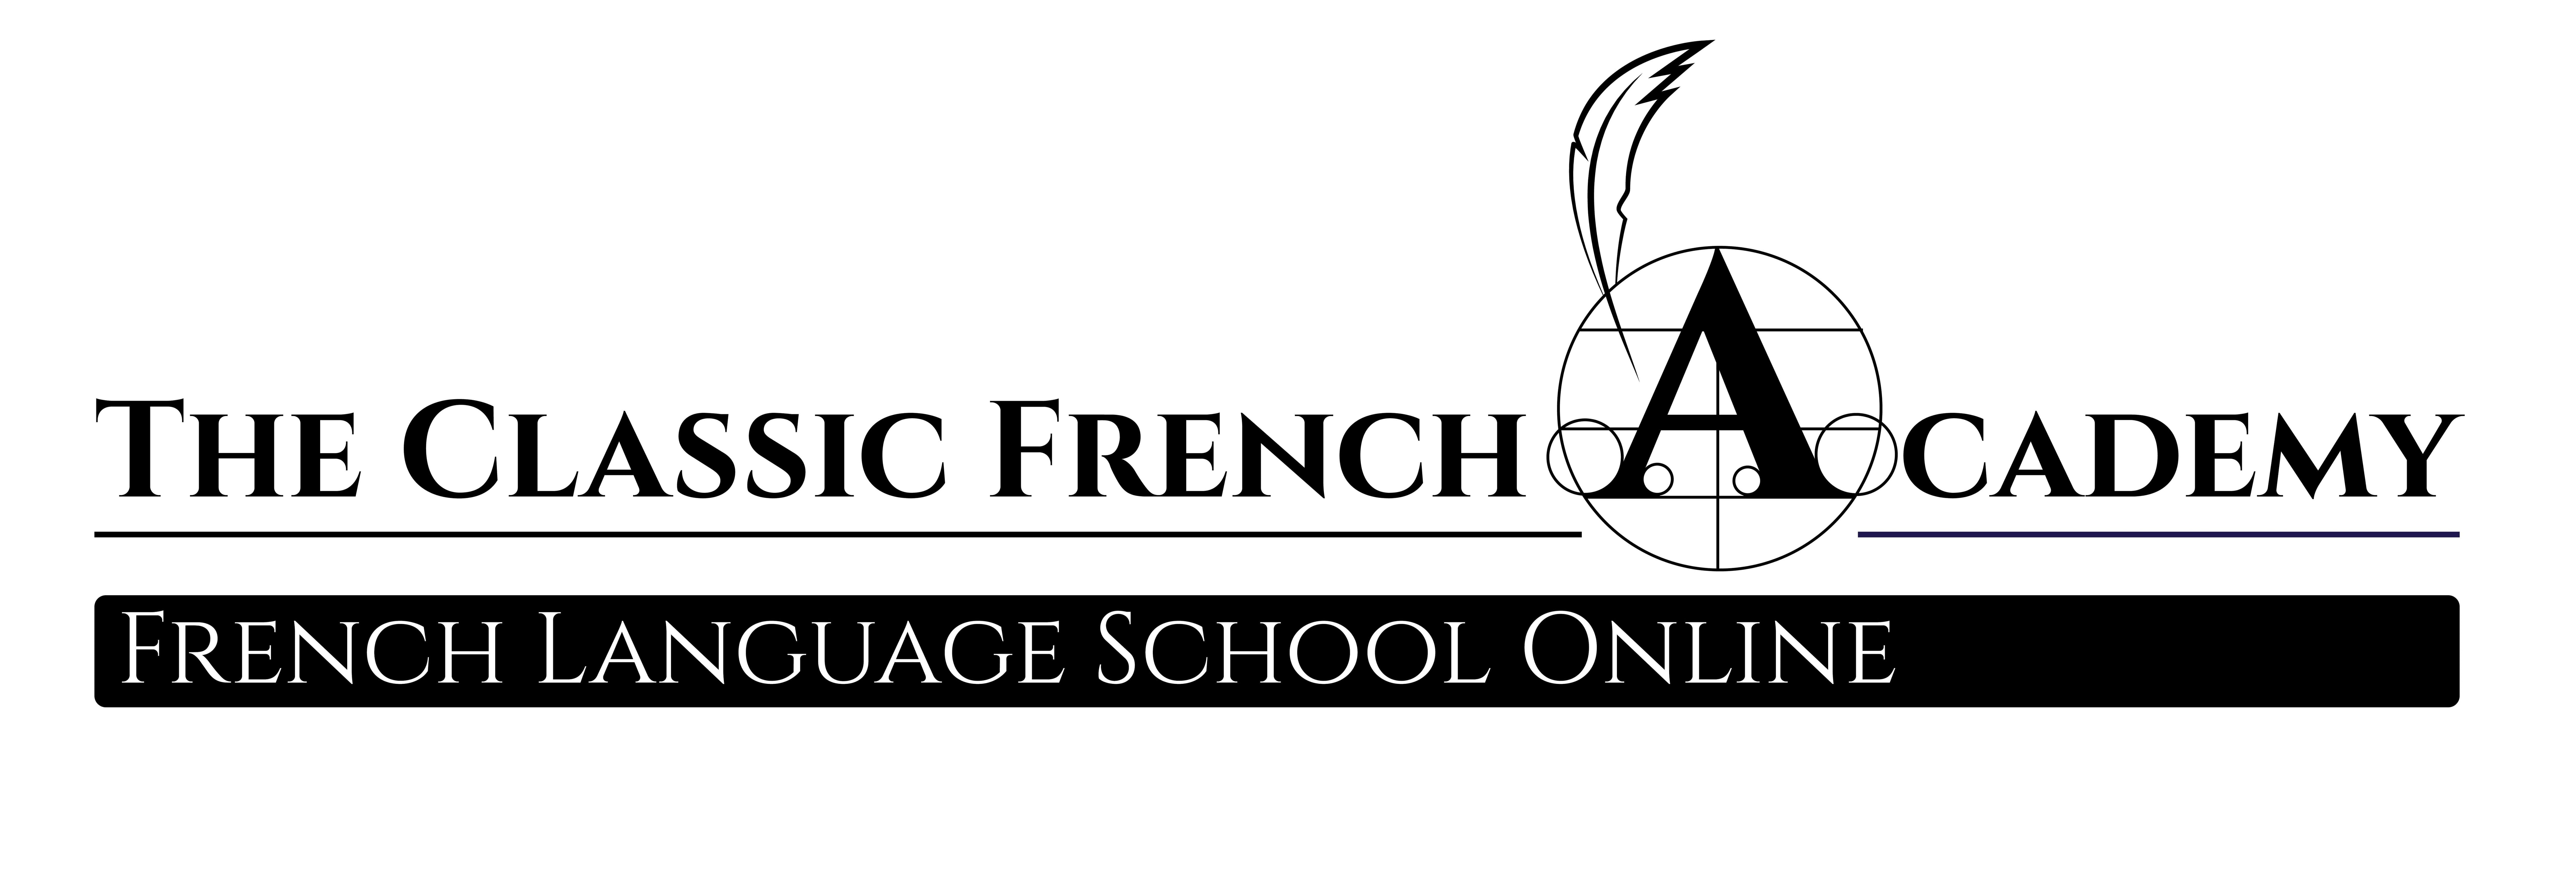 The Classic French Academy - French Language School Online